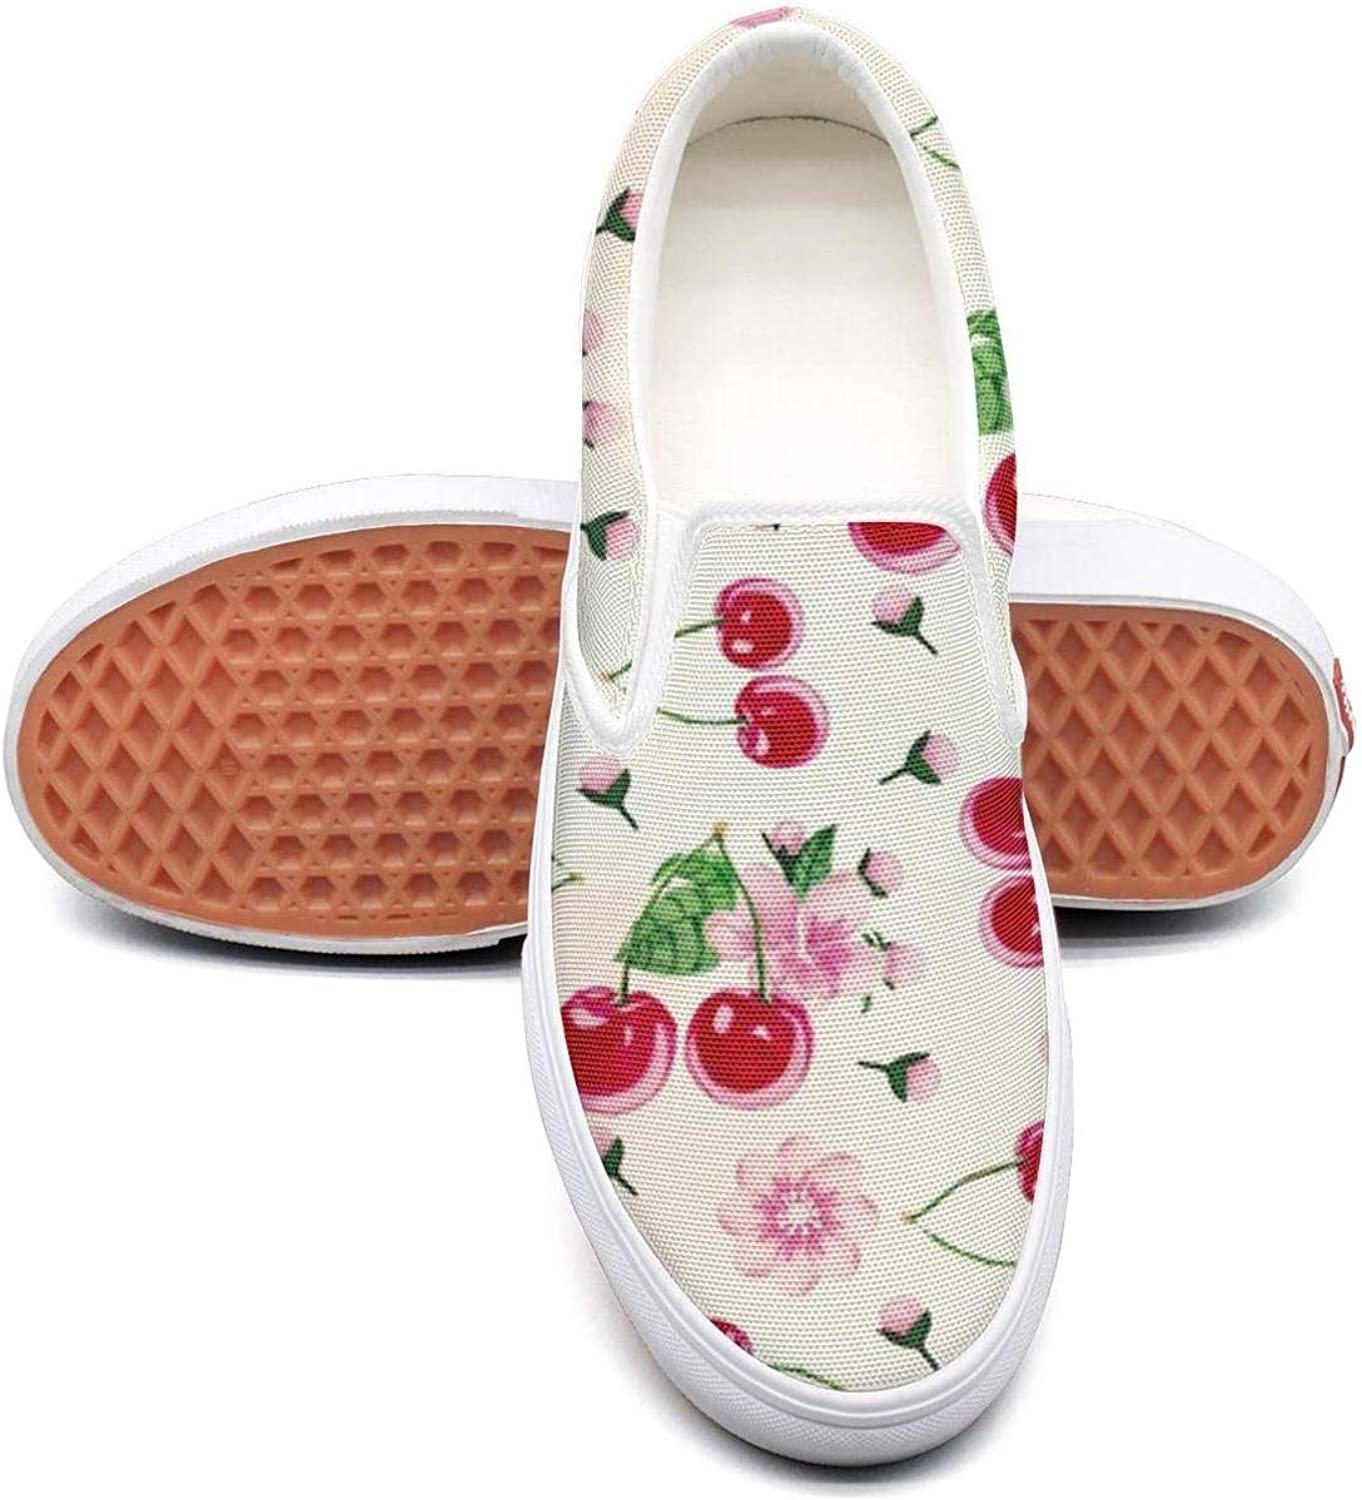 Women's Fashion shoes Cherry Art Print Comfortable Loafers Slip on Casual Walking Sneakers